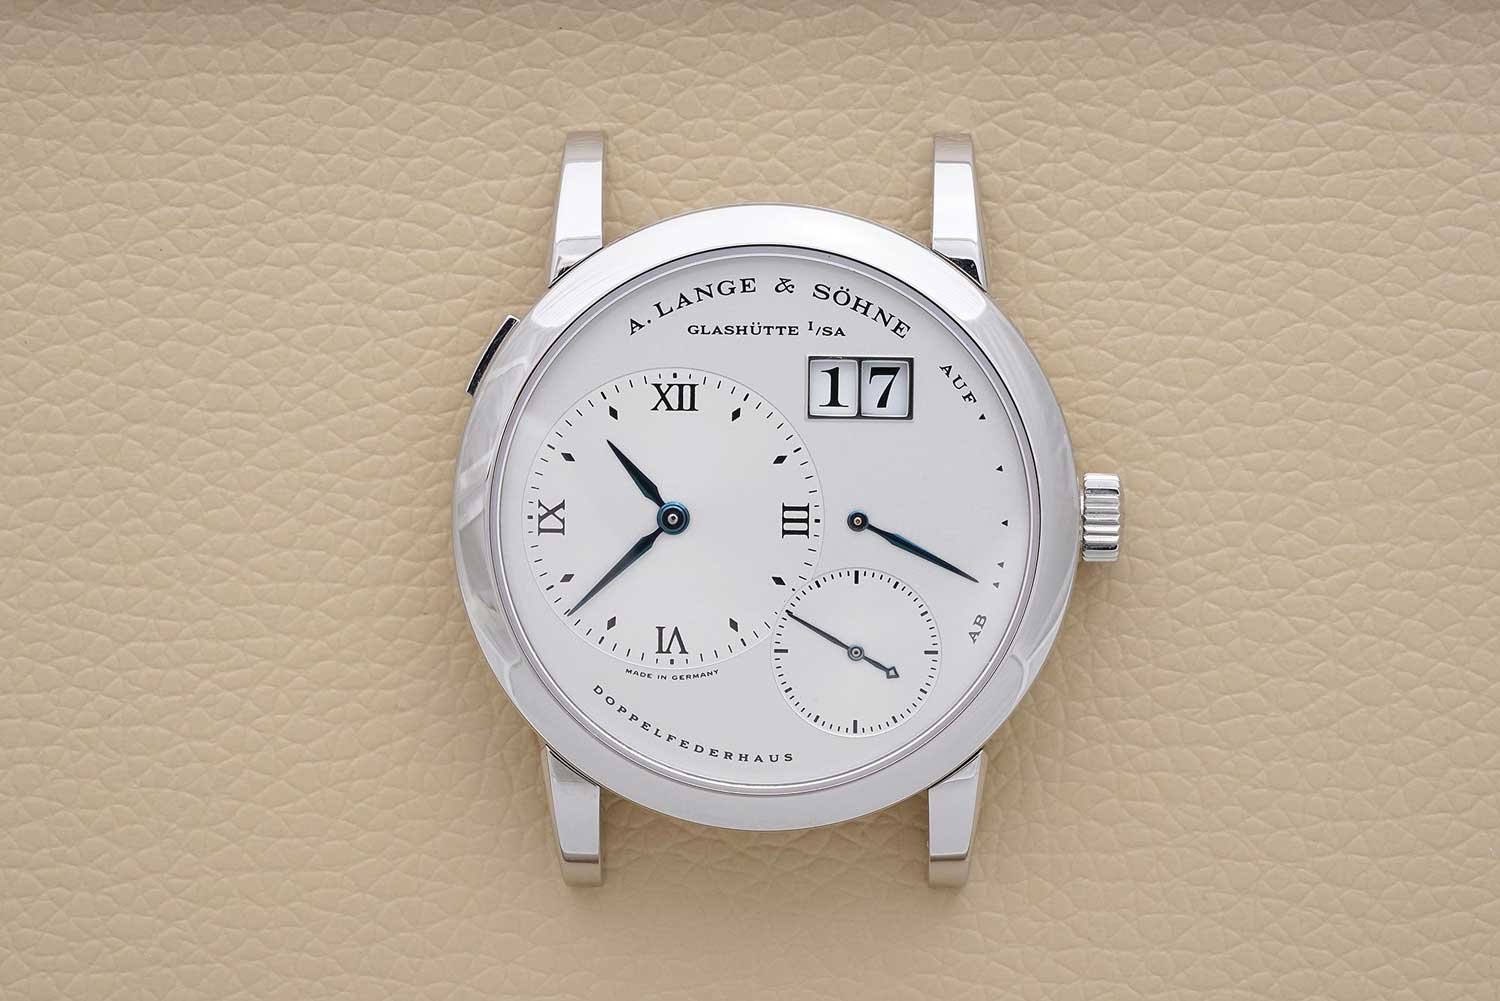 The fabled stainless steel Lange 1 reference 101.026 (Image: phillips.com)